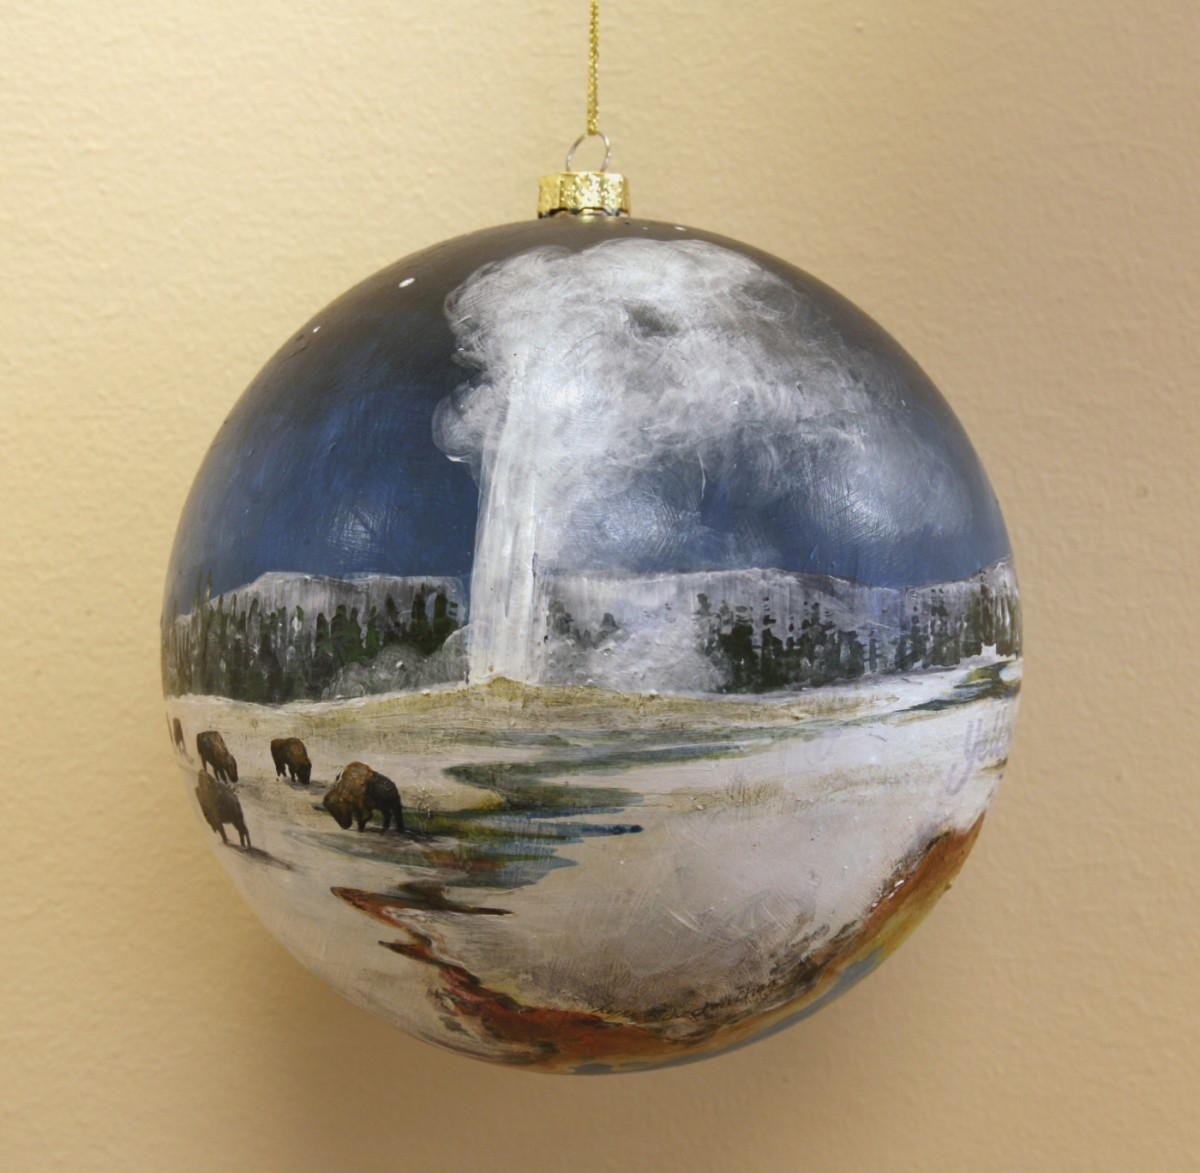 Ornament representing Yellowstone National Park from the Laura Bush 2007 tree